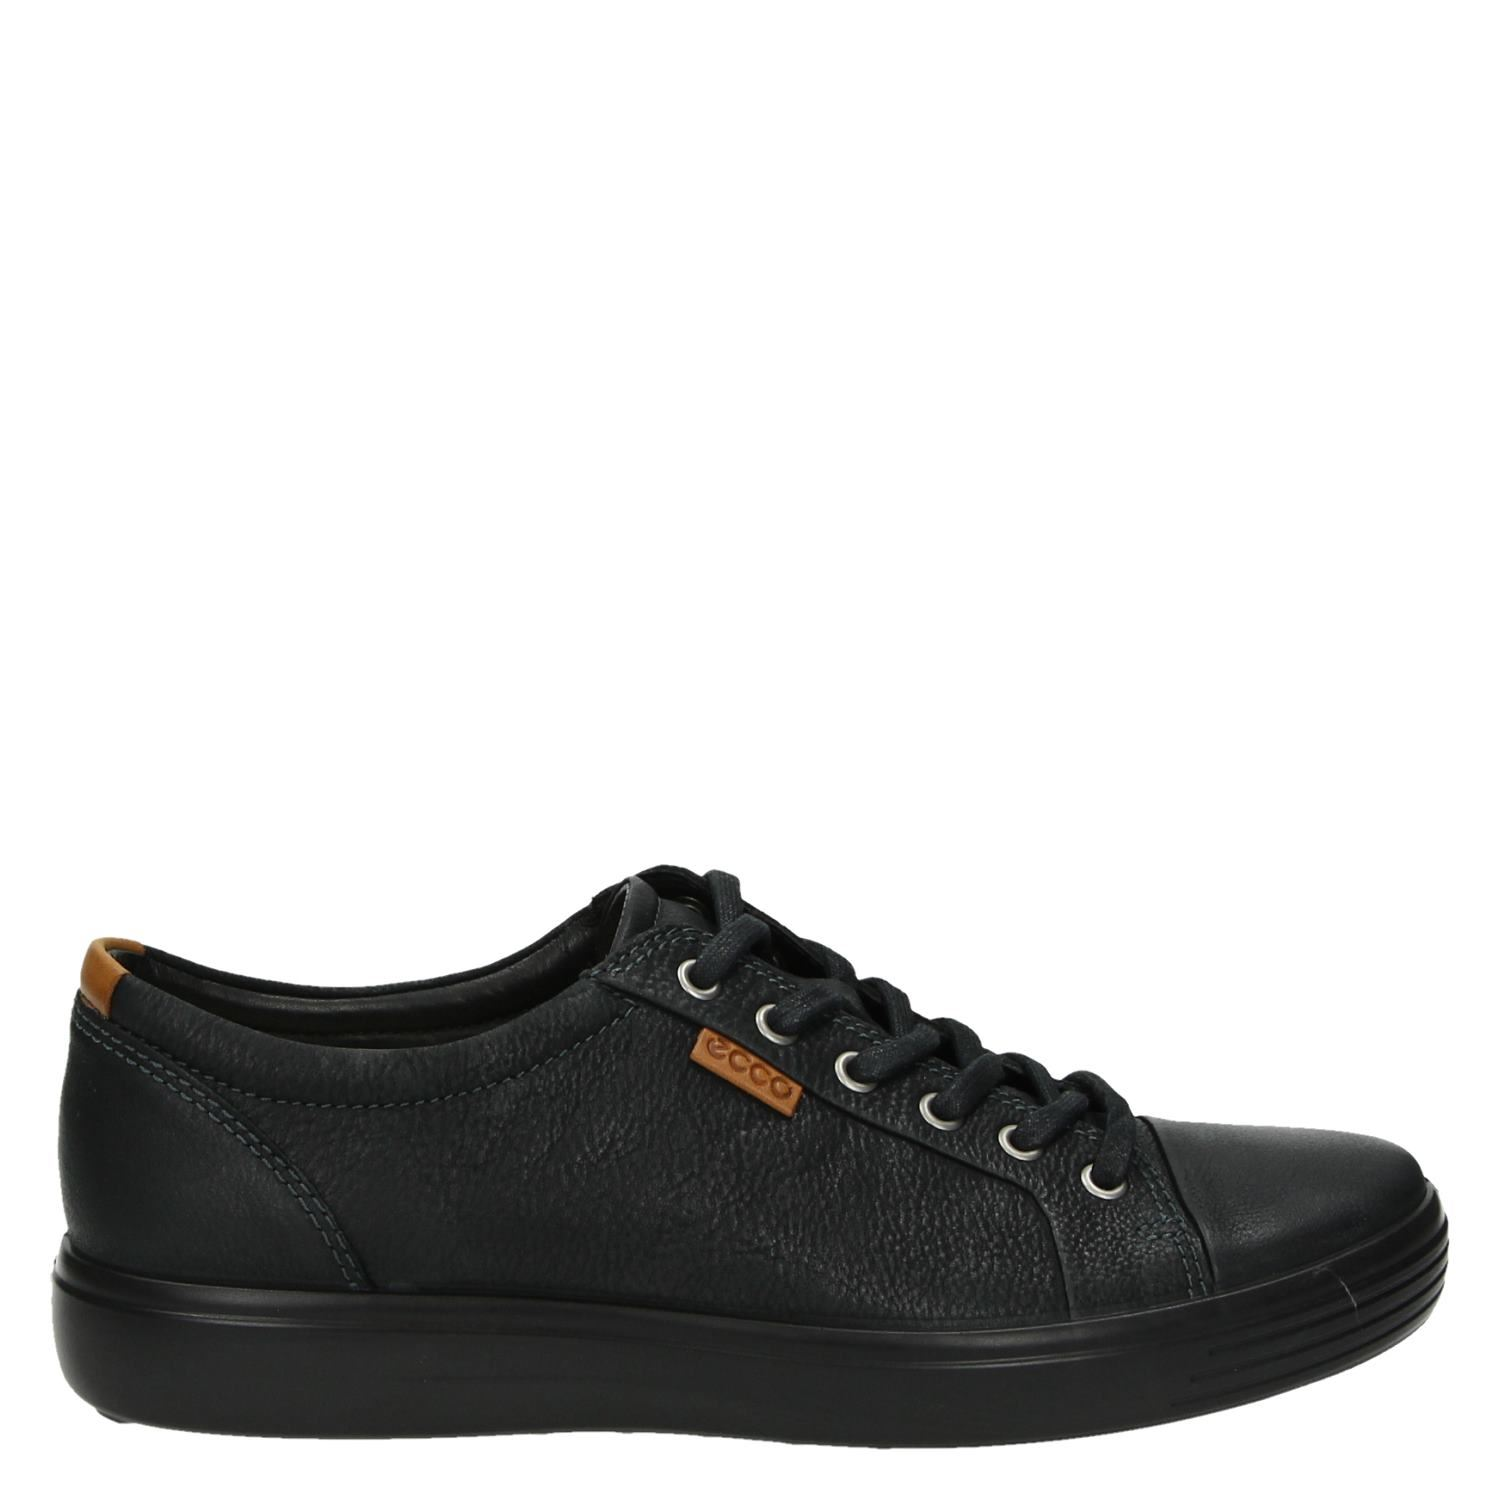 - Ecco Soft 7 lage sneakers